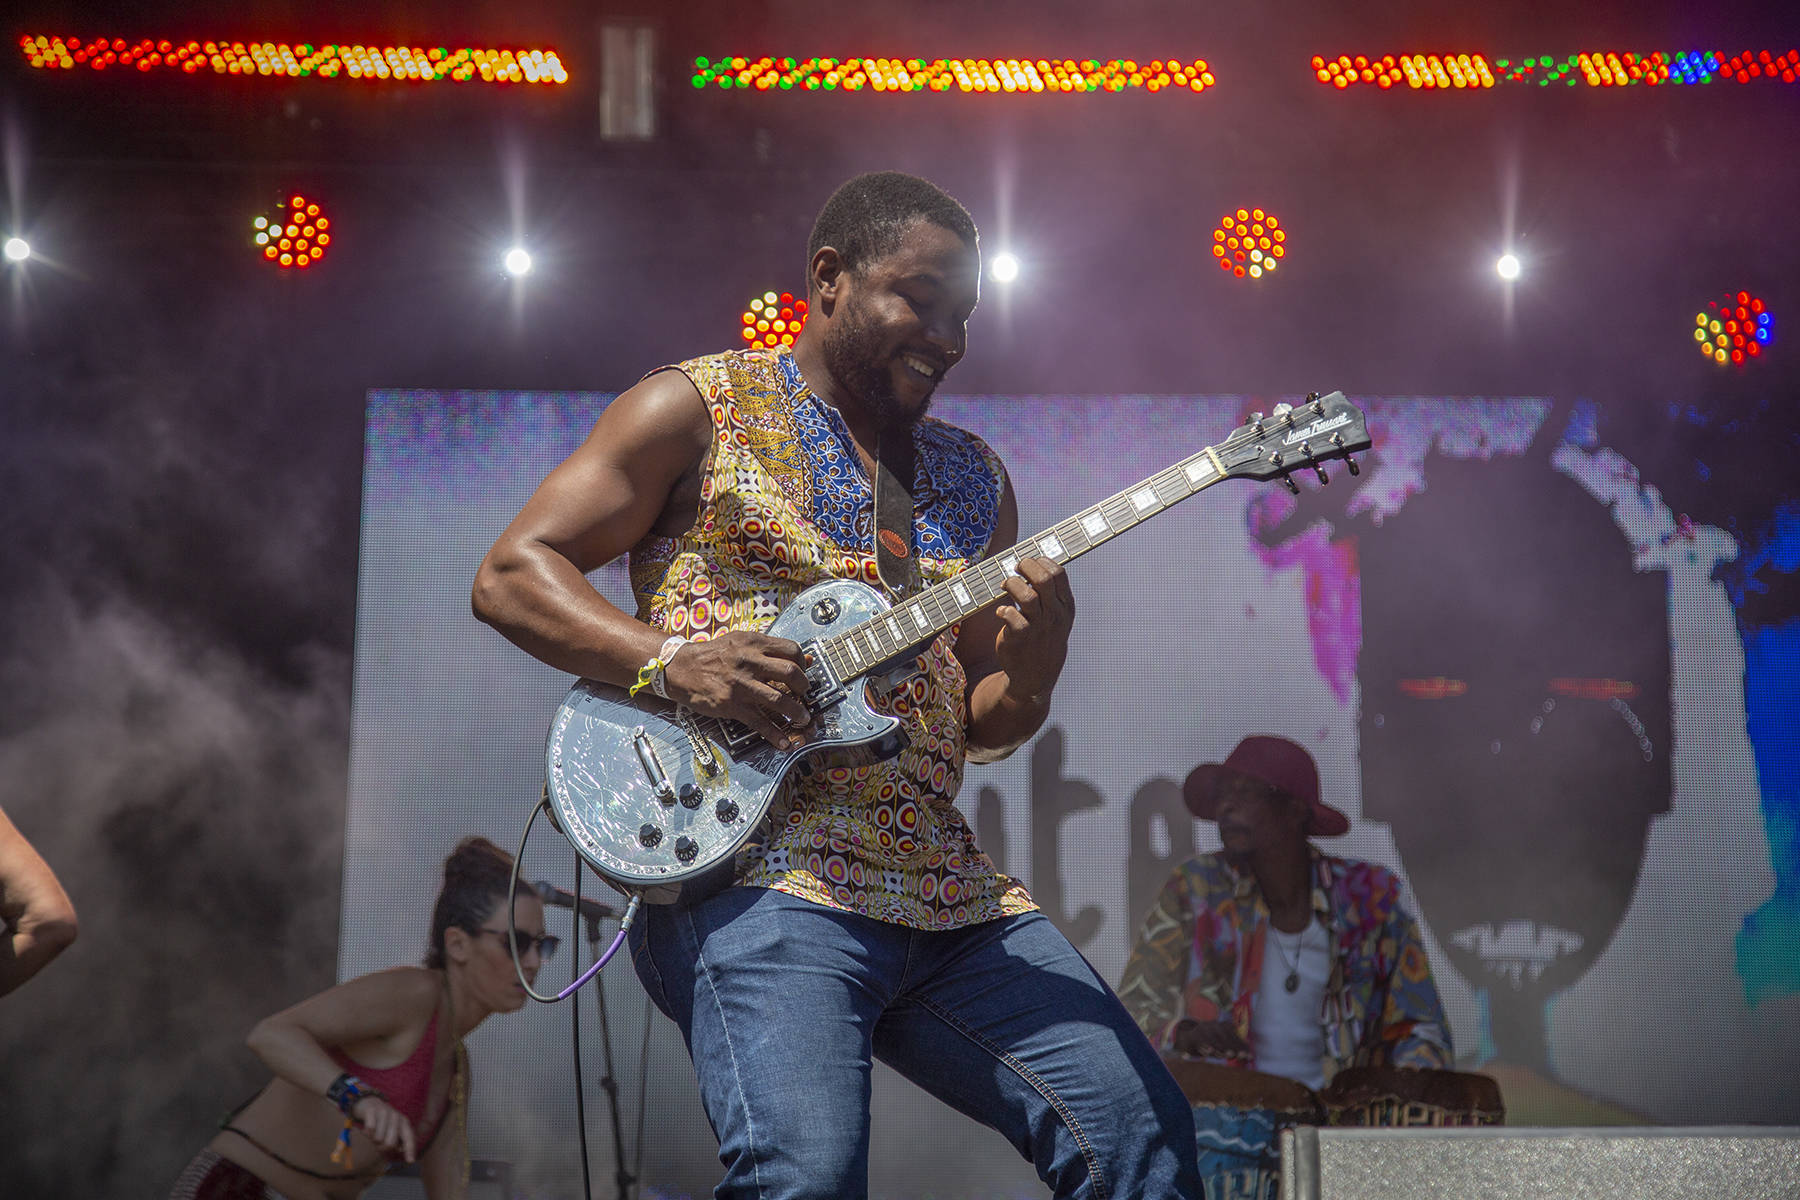 Jupiter and Okwess performs at the final day of Outside Lands on Sunday, August 11, 2019. (Ellie Doyen/Special to S.F. Examiner)